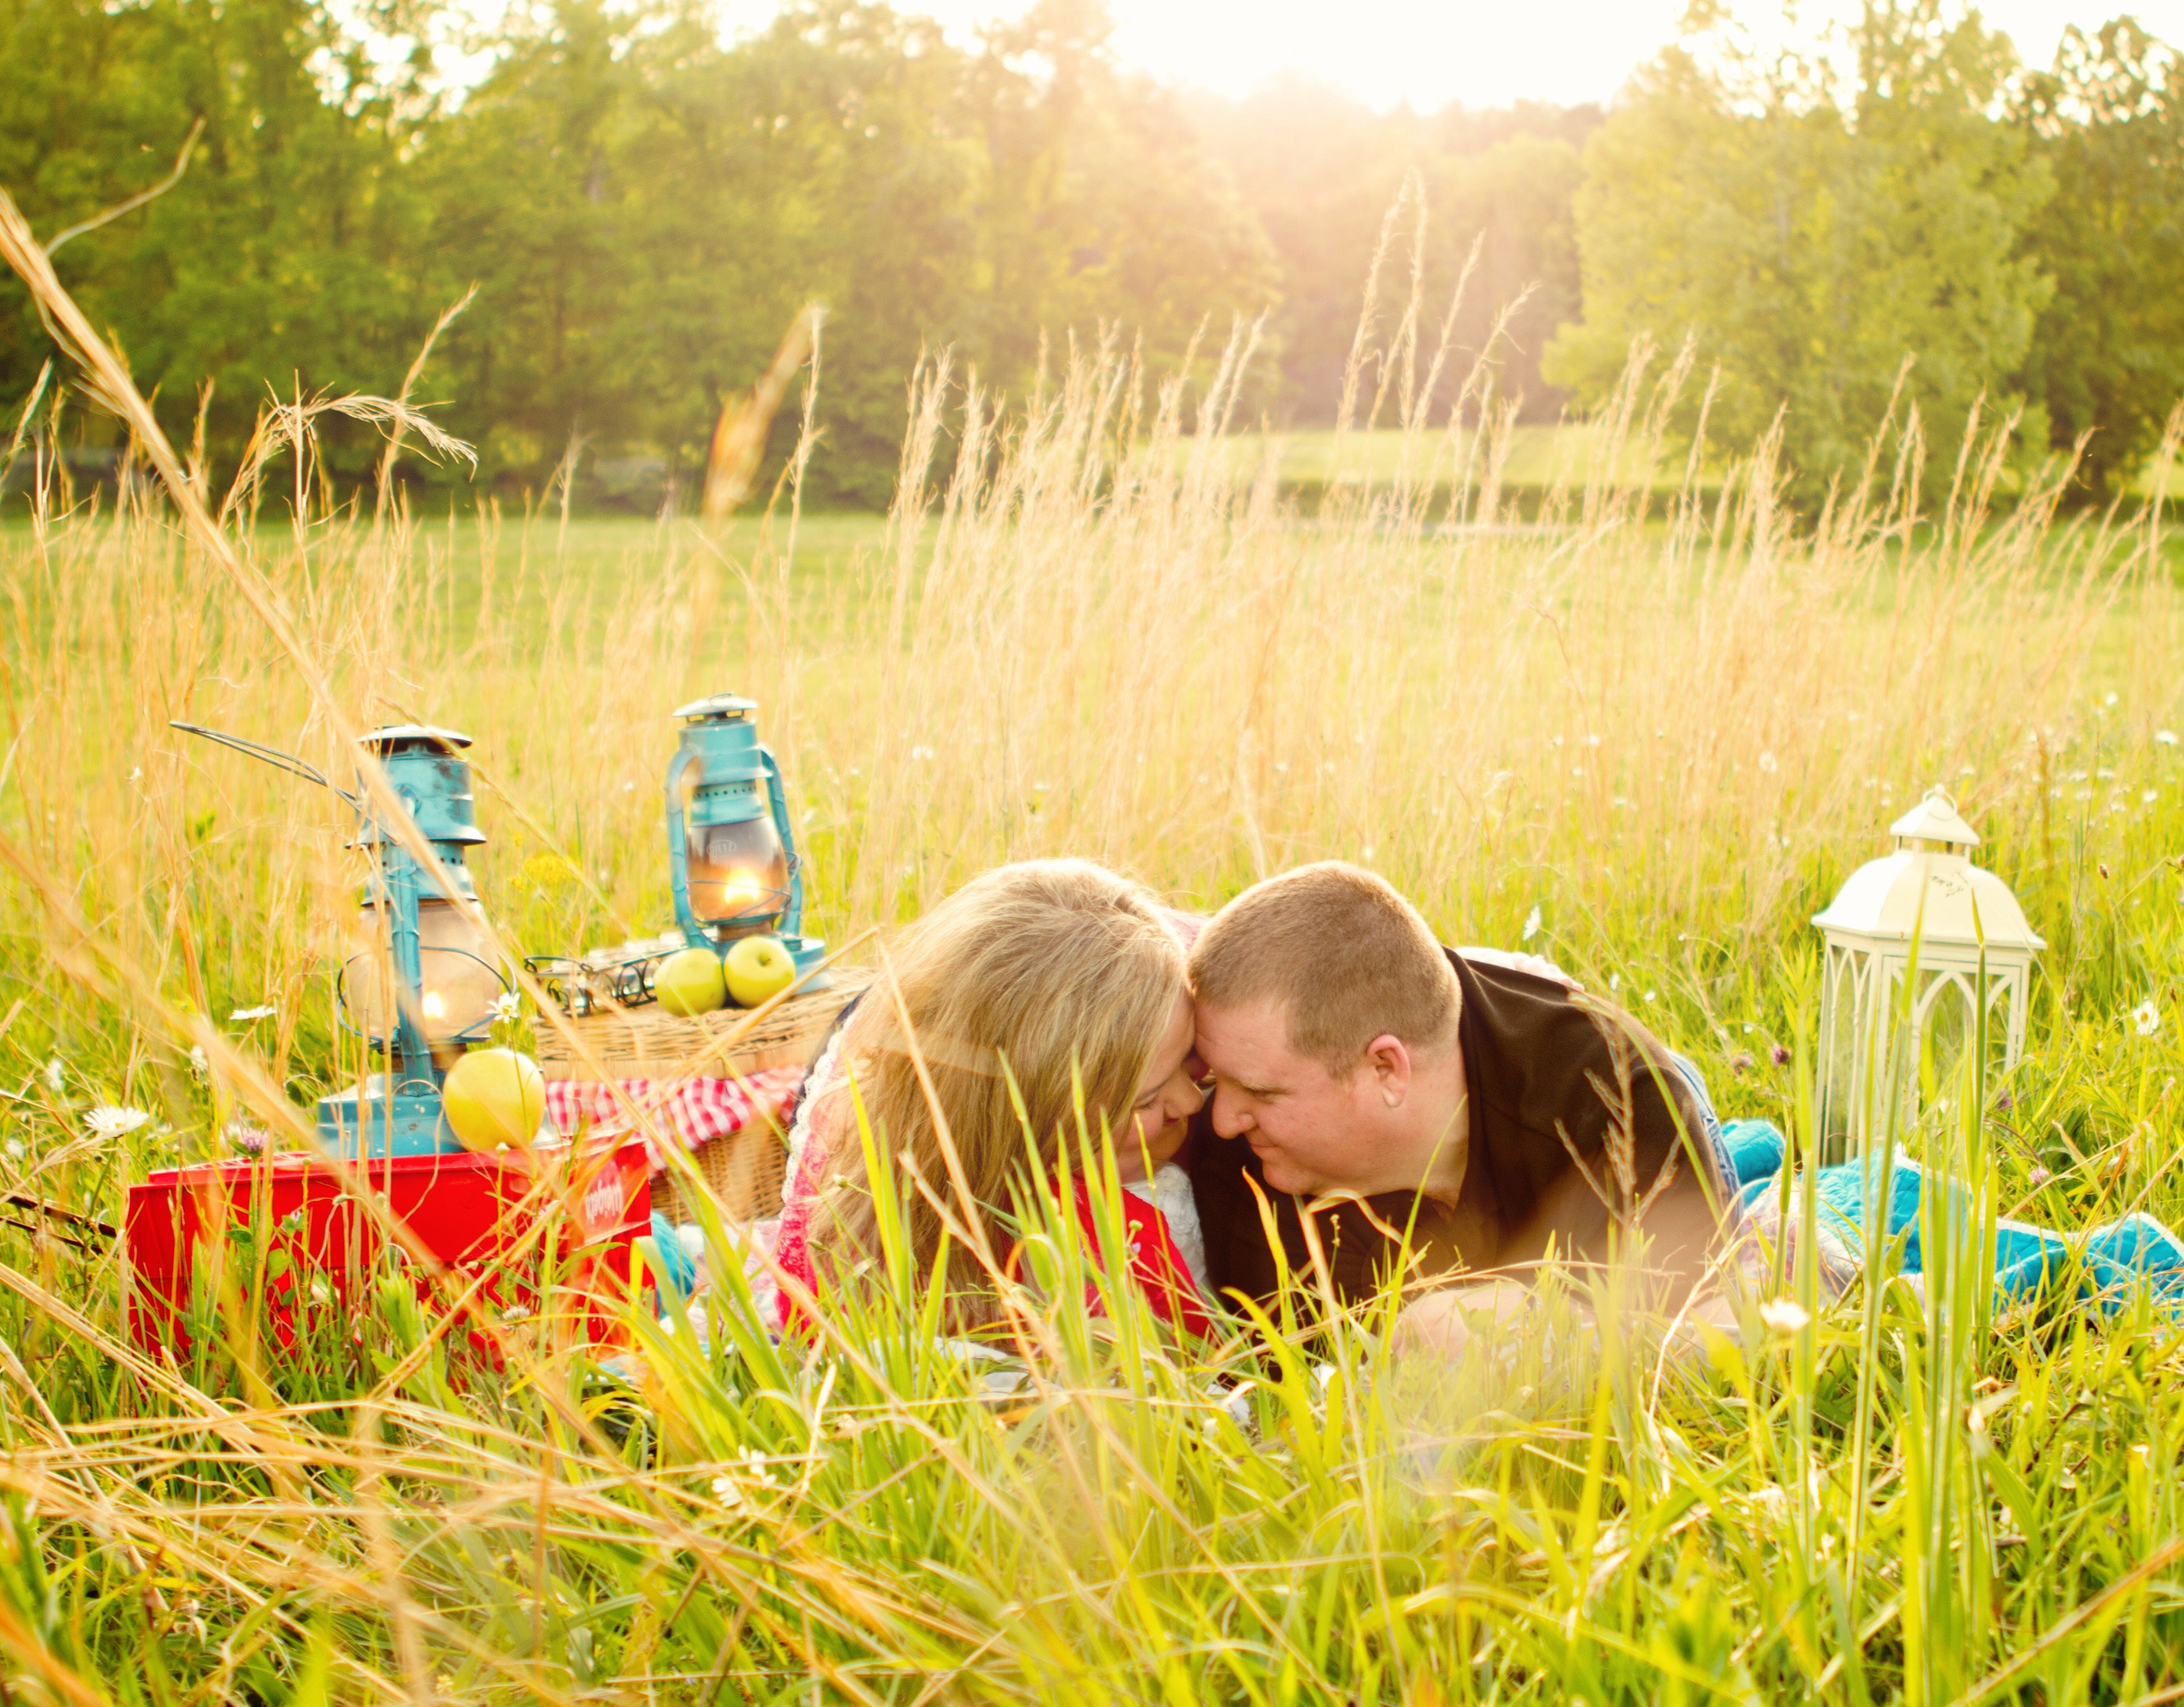 Country Picnic Engagement Shoot | photos by http://www.ivyleephotography.com | see more http://www.thebridelink.com/blog/2013/07/08/country-picnic-engagement-shoot-by-ivy-lee-photography/